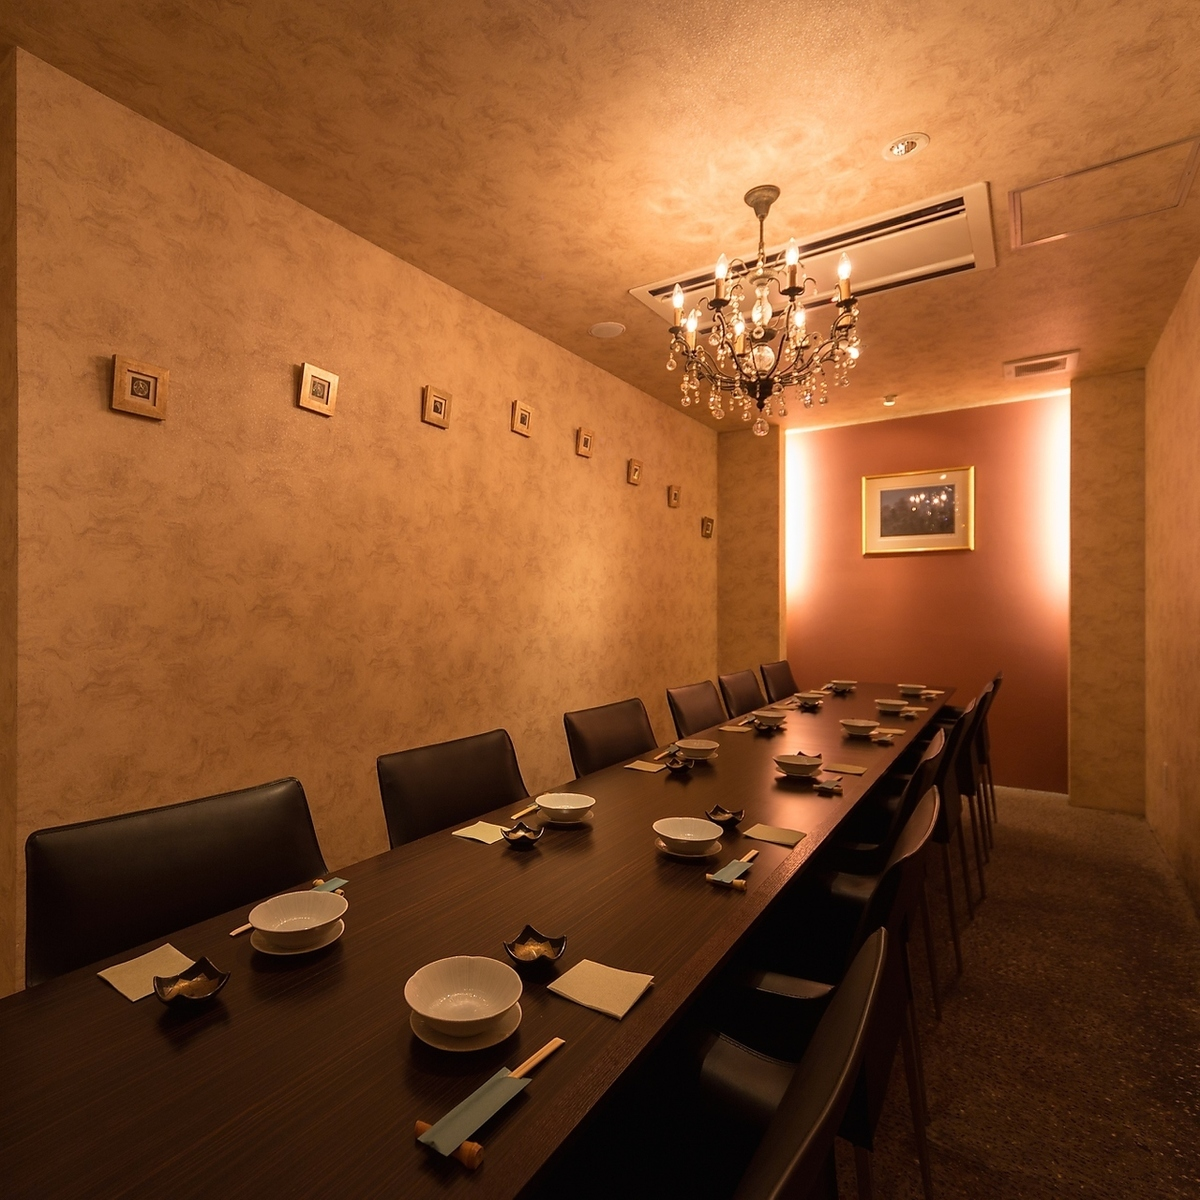 Completely private room for up to 12 people.The only Western-style room in the Japanese space.The space where the chandelier lights brightly, Please also visit alumni associations and mama associations